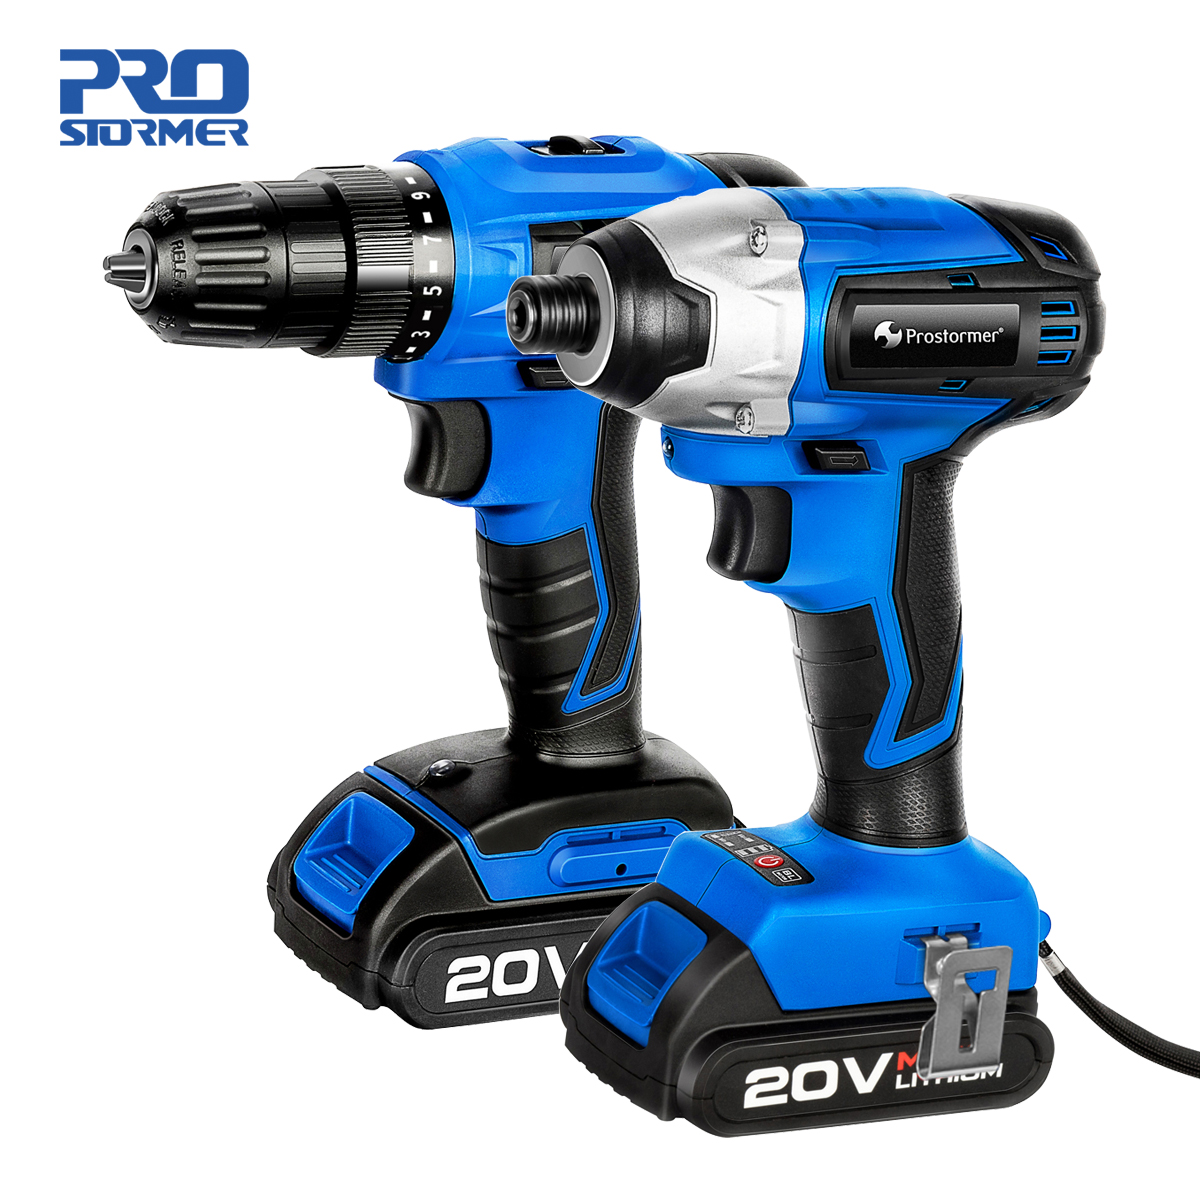 PROSTORMER 20V Cordless Impact Drill Screwdriver 2000mAh Wireless Rechargeable Screwdriver Optional Two-Piece Set